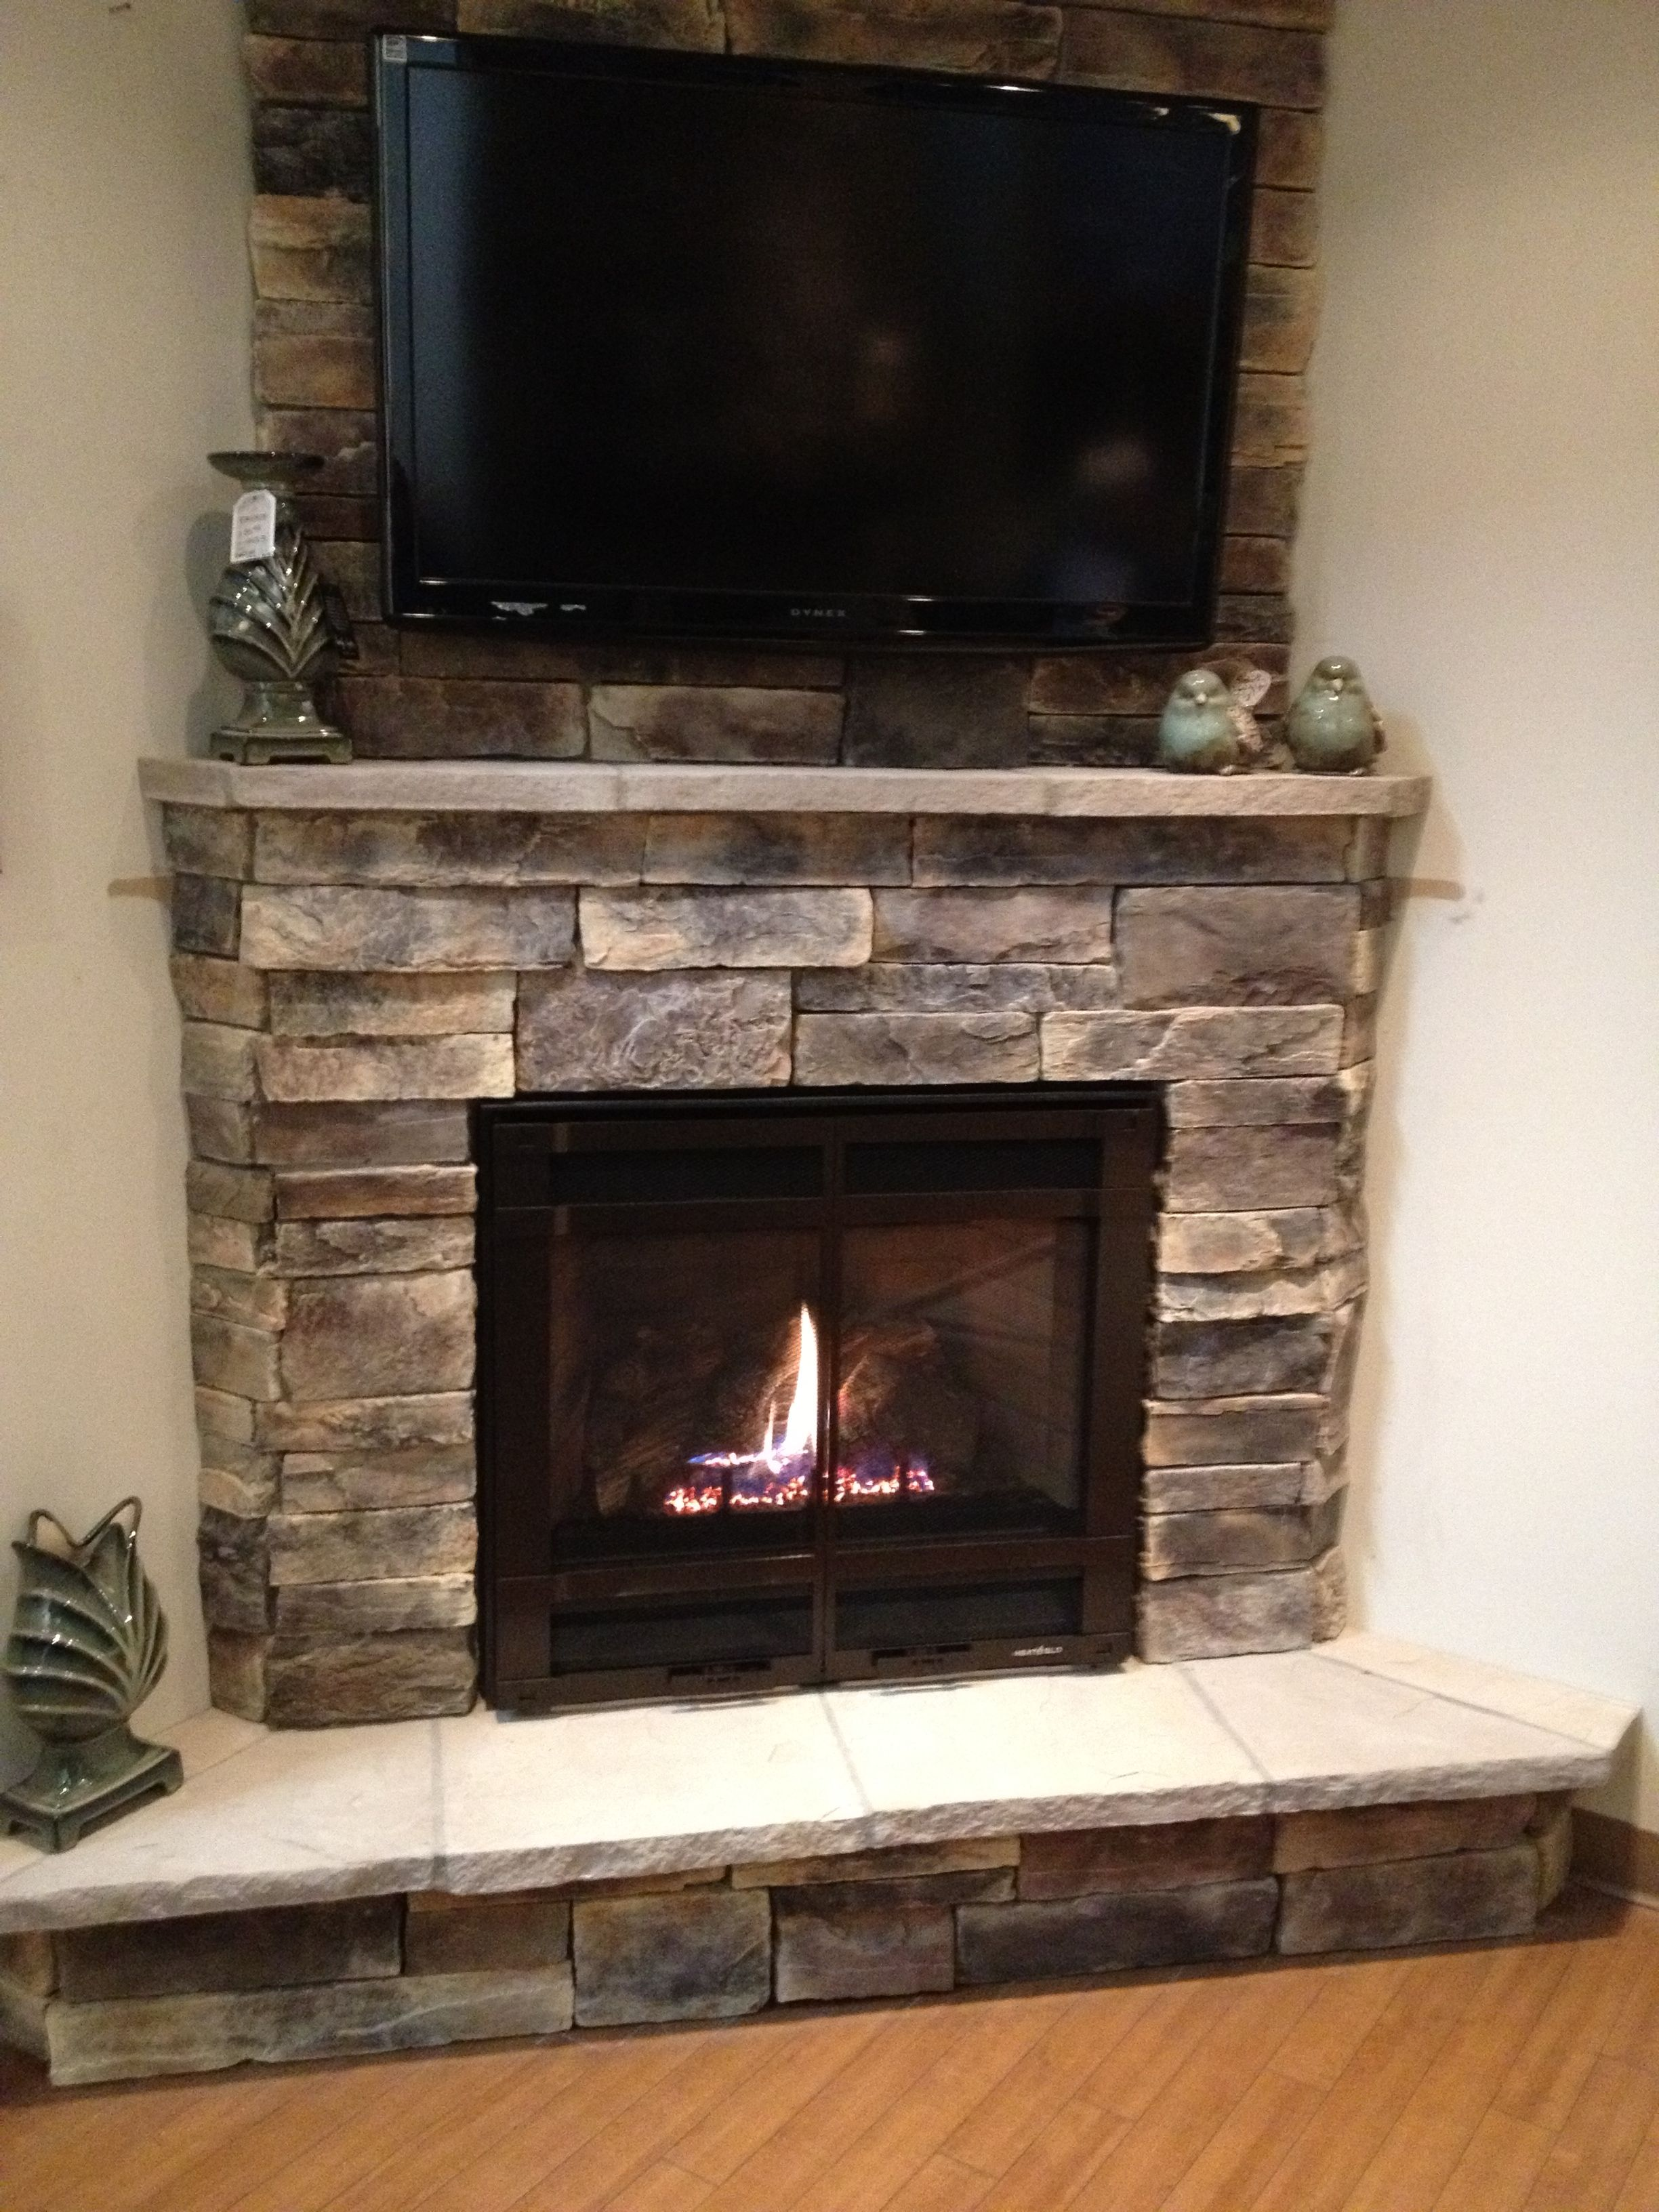 Corner-fireplace With TV Mounted Above